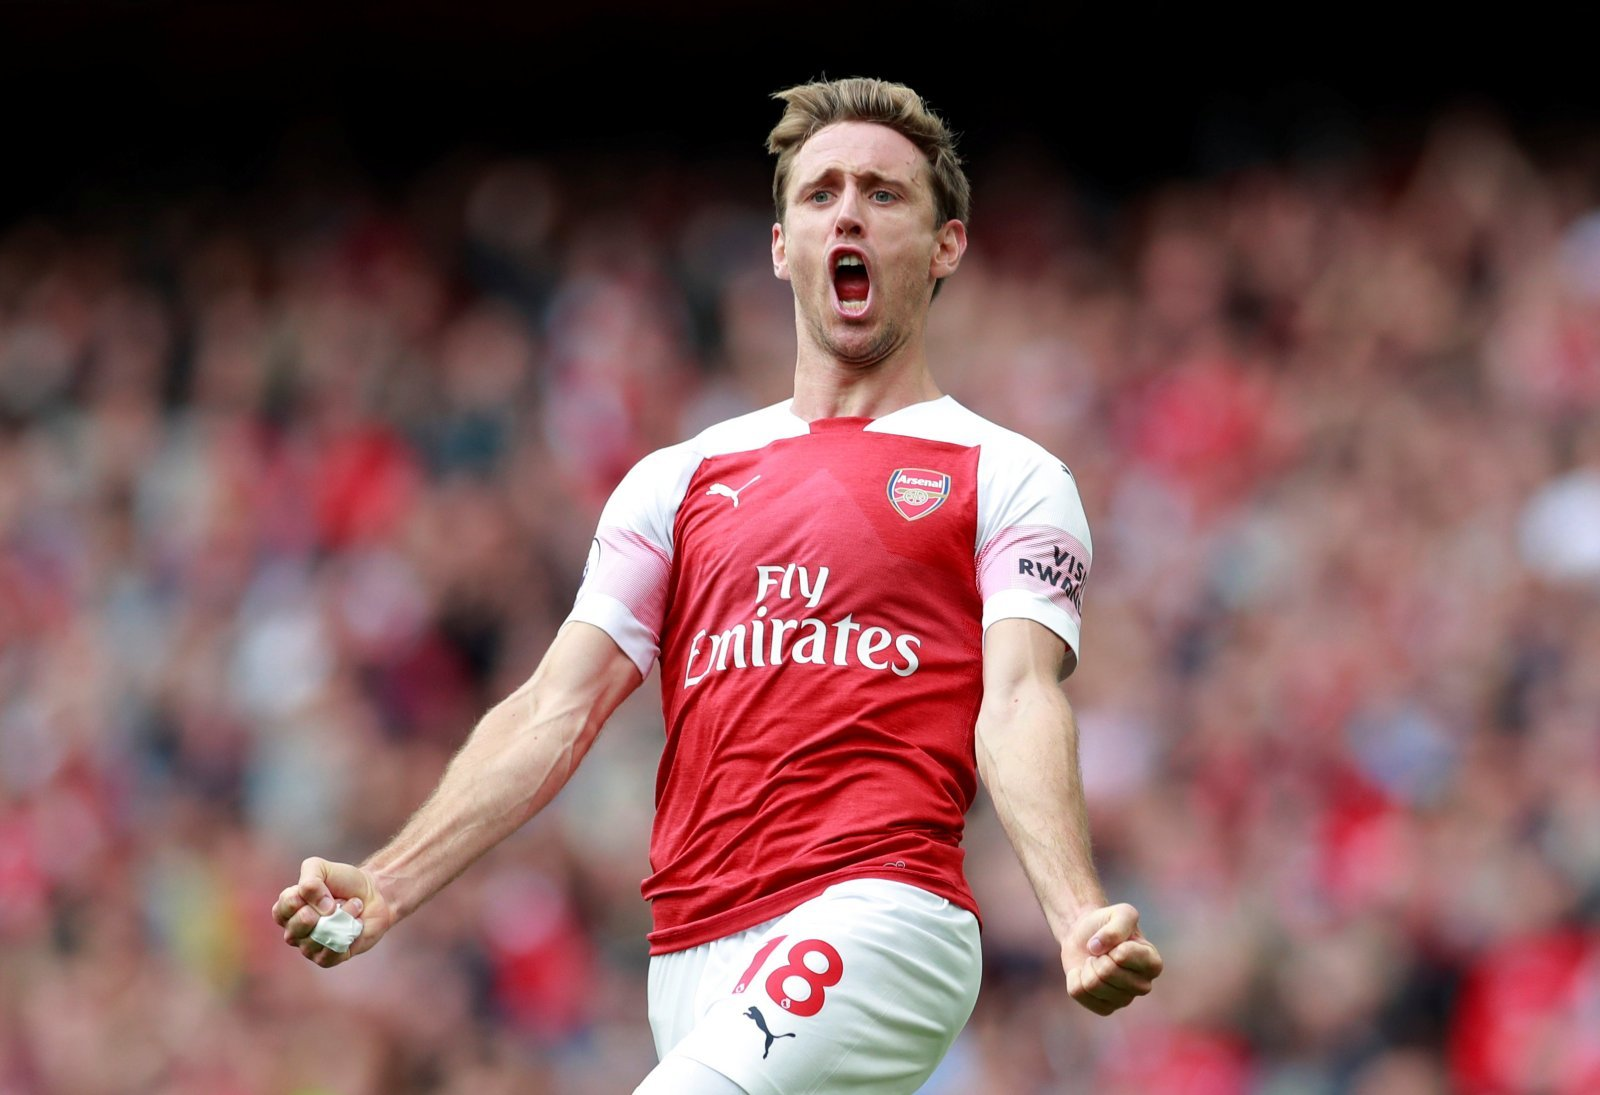 Arsenal: Nacho Monreal contract termination rumours proved false